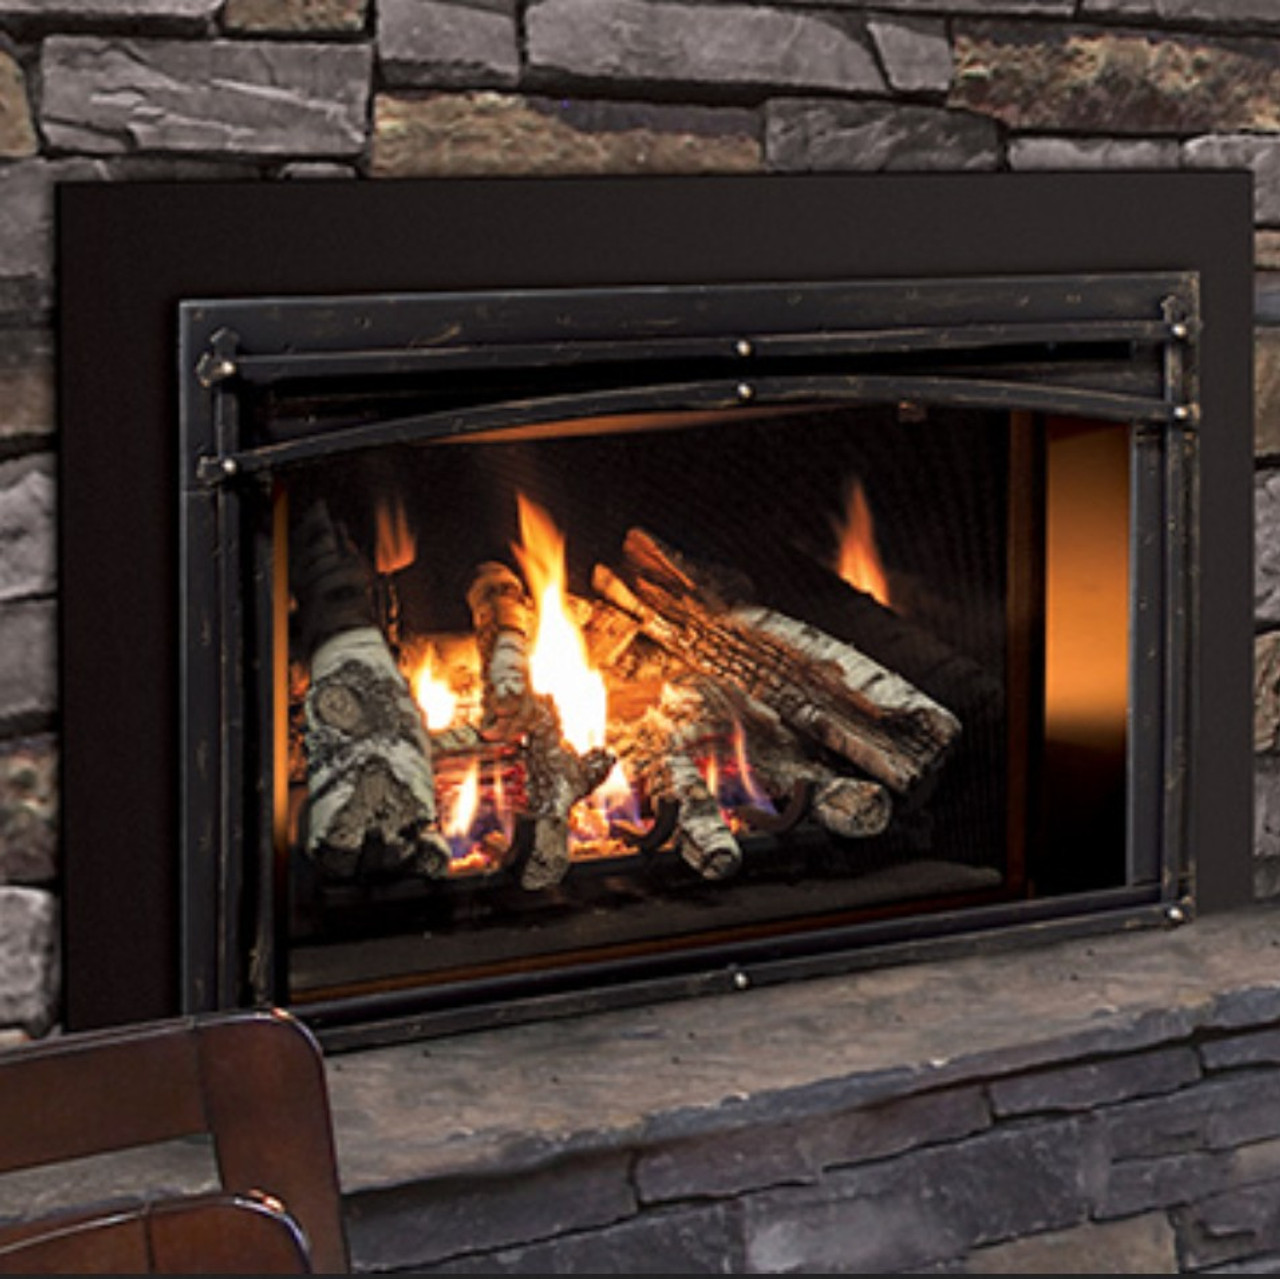 Enviro E33 Medium Gas Insert w/Forgeworks surround